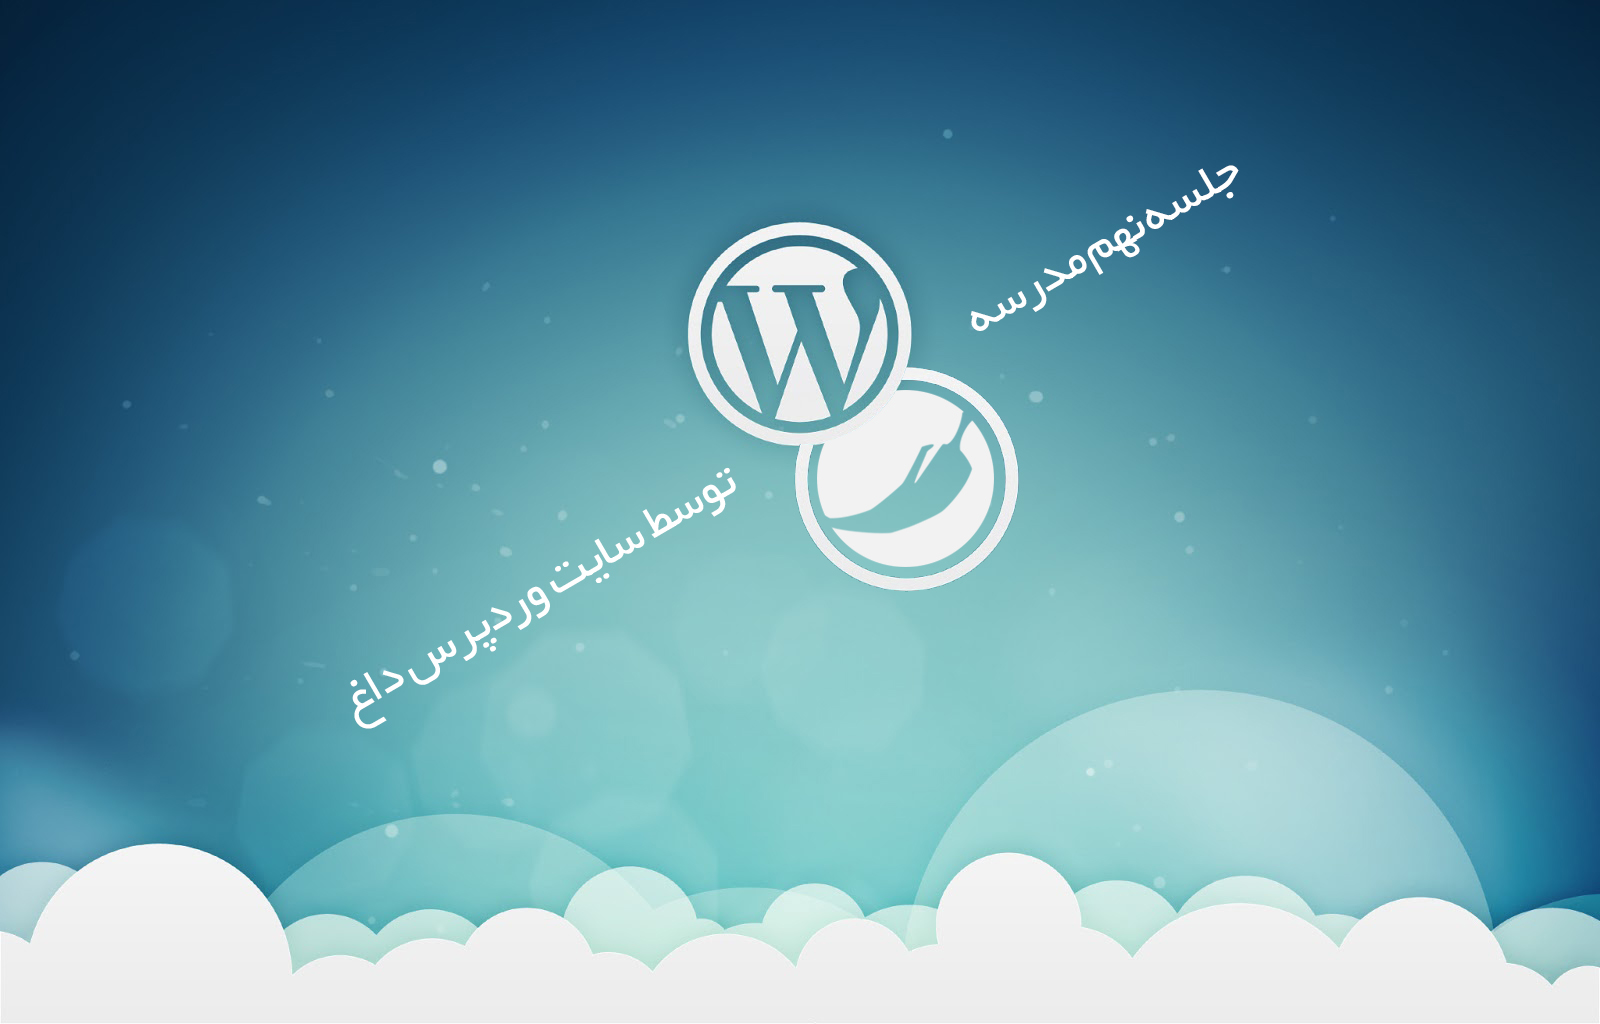 school-wordpress-redwp-9